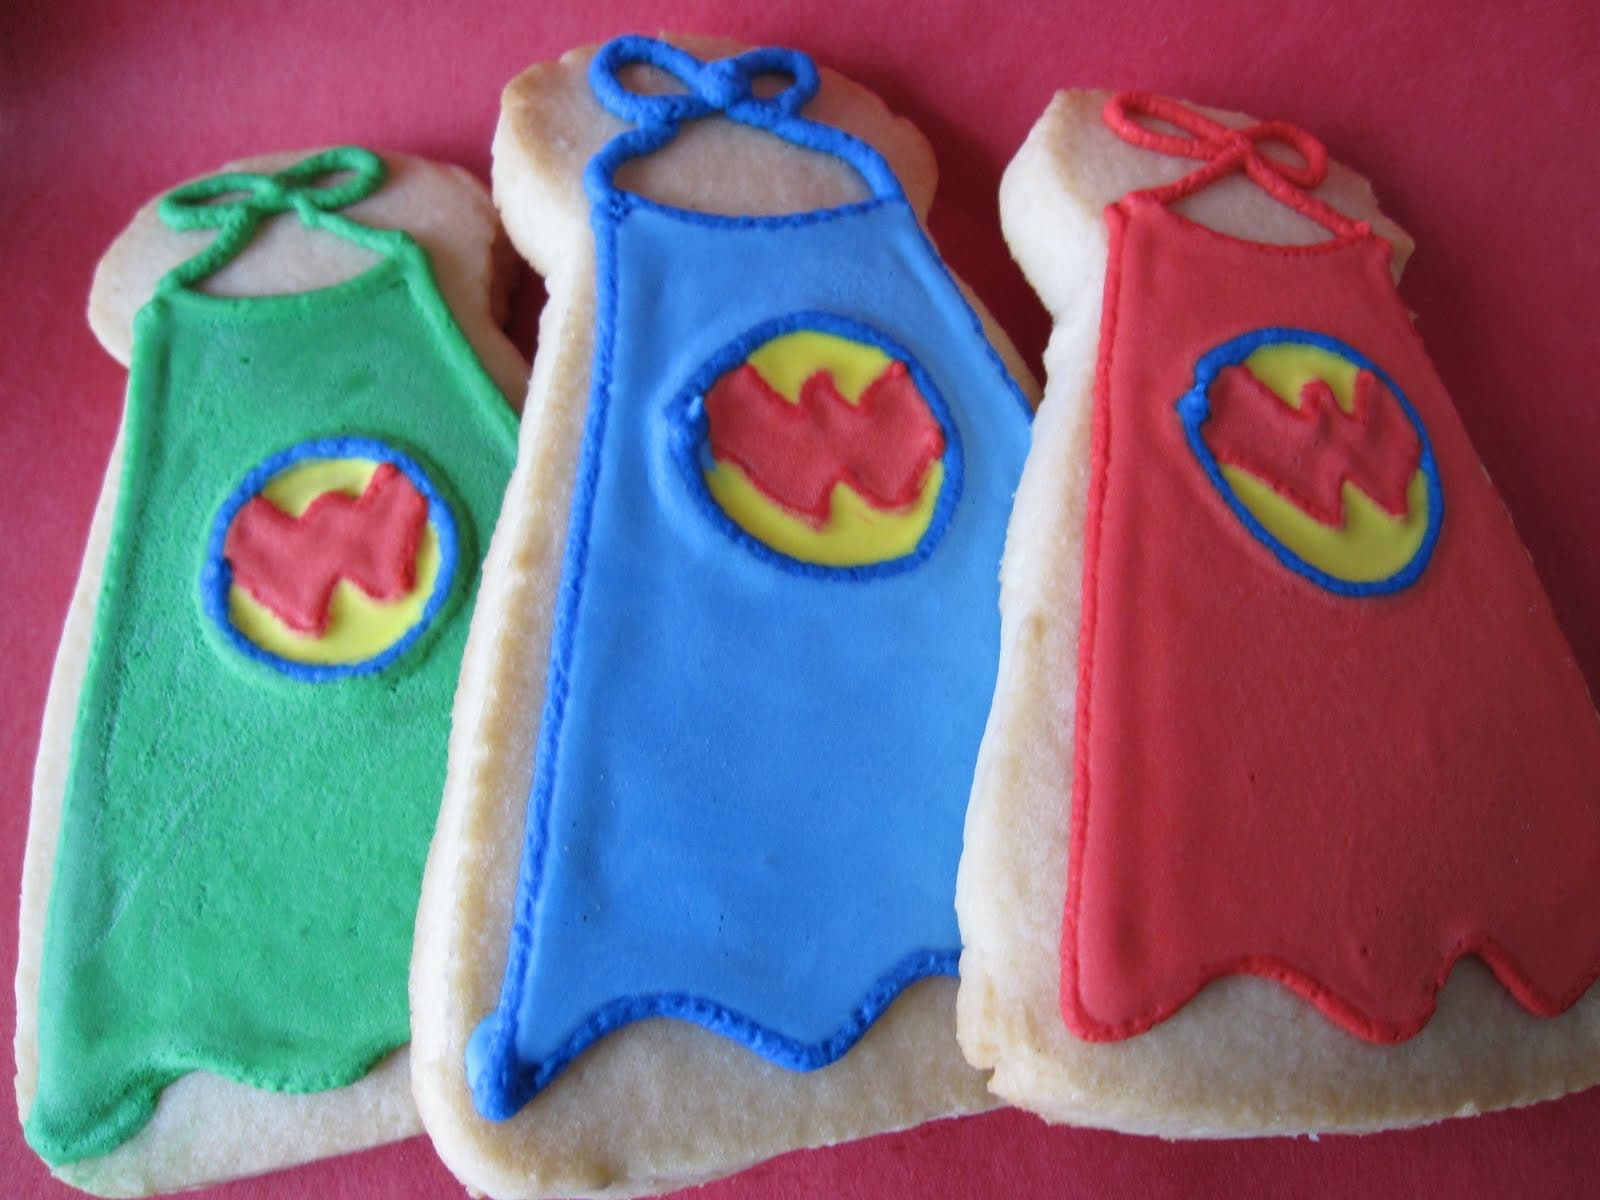 3 cookies decorated as Wonder Pets capes